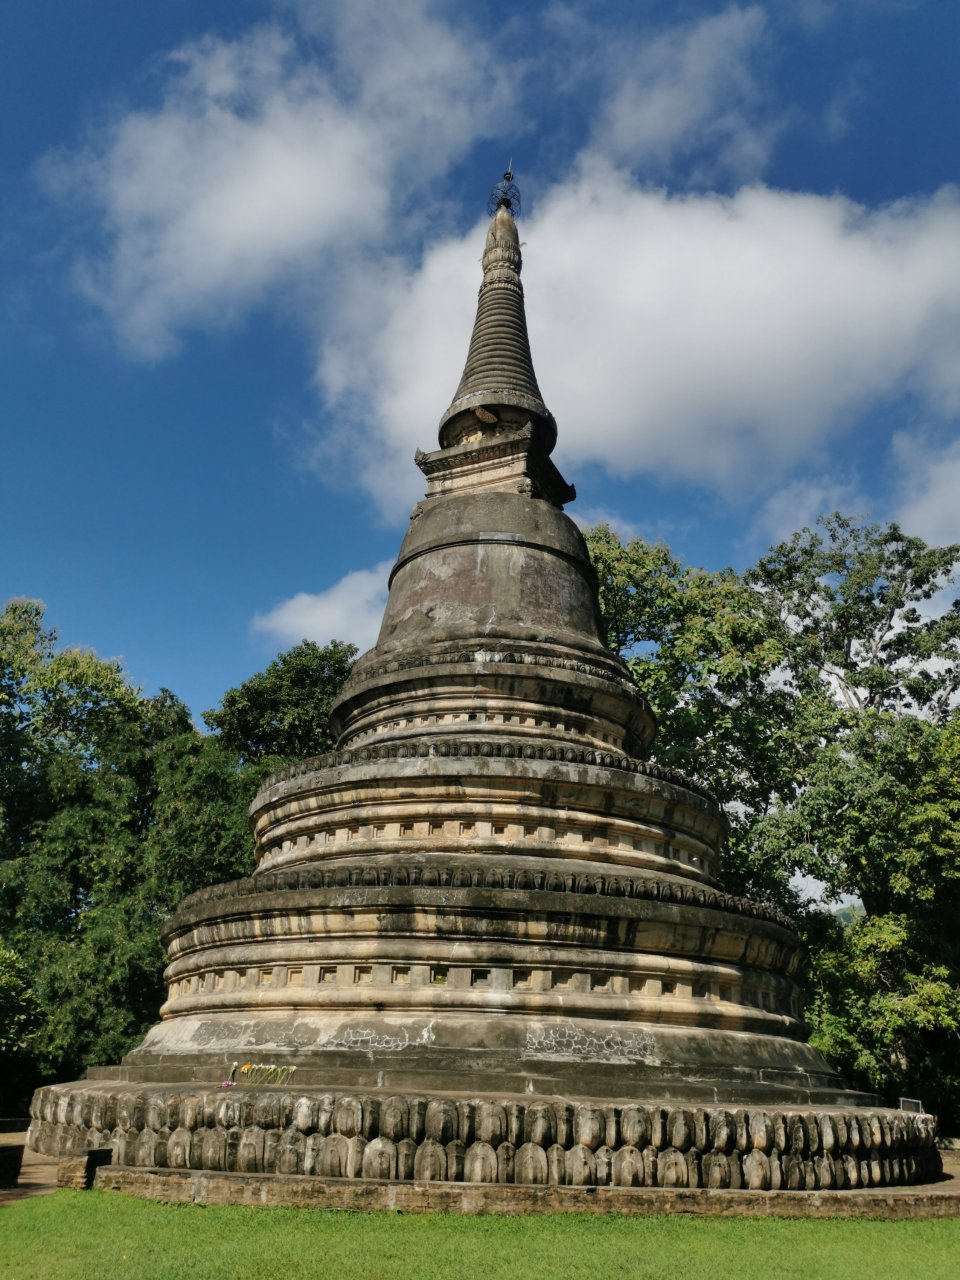 The Chedi in Wat Umong